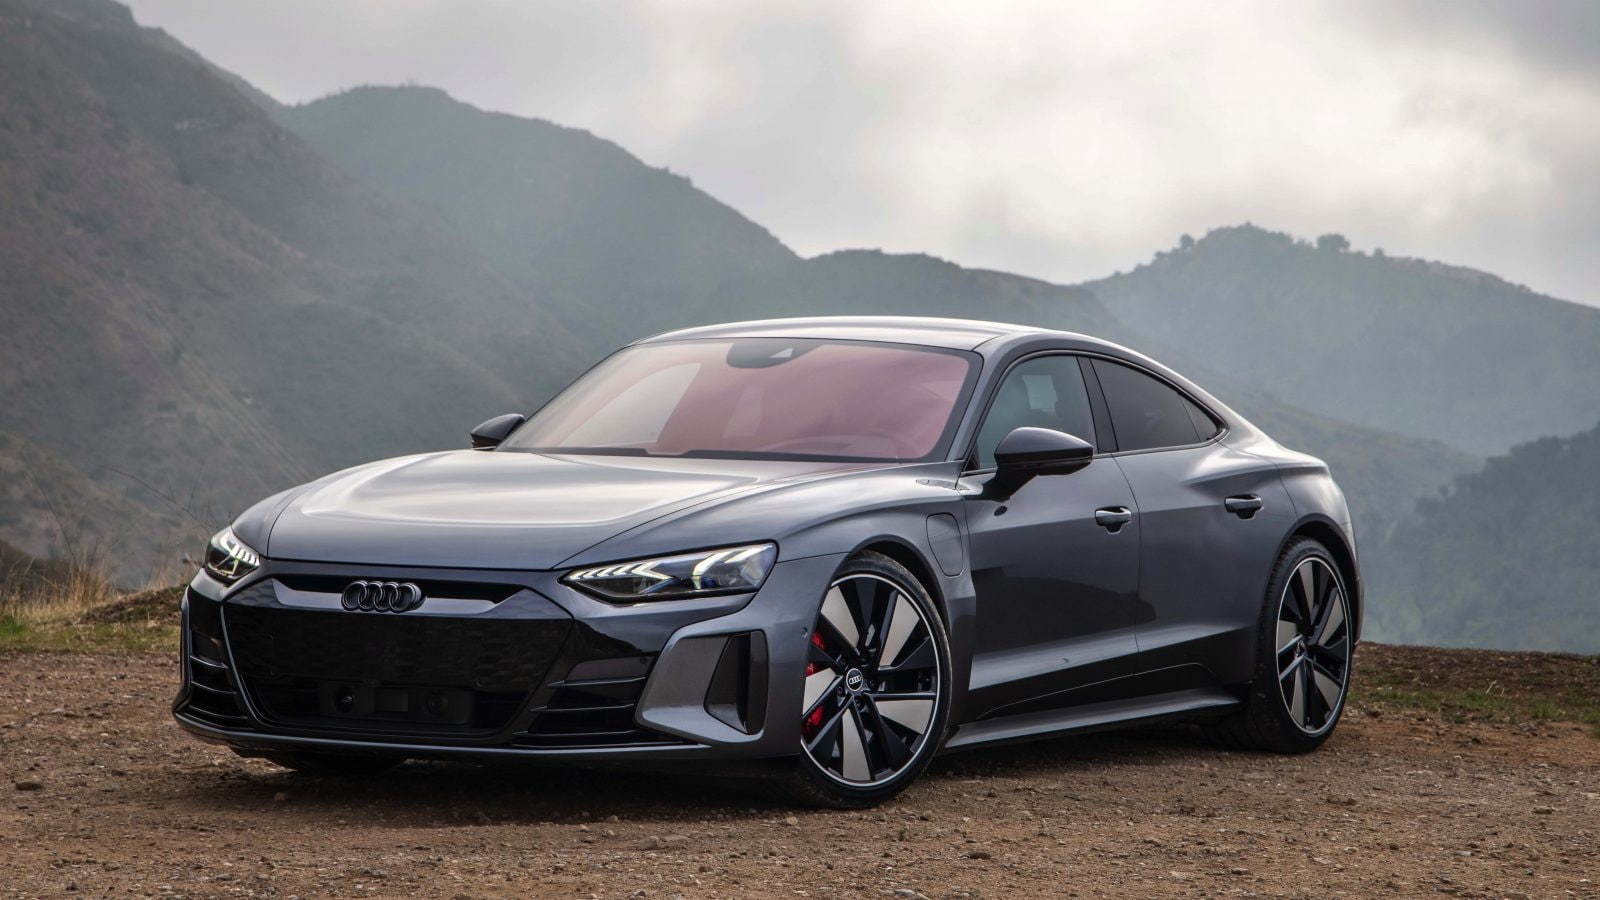 2022 Audi e-tron gt on a hill in grey